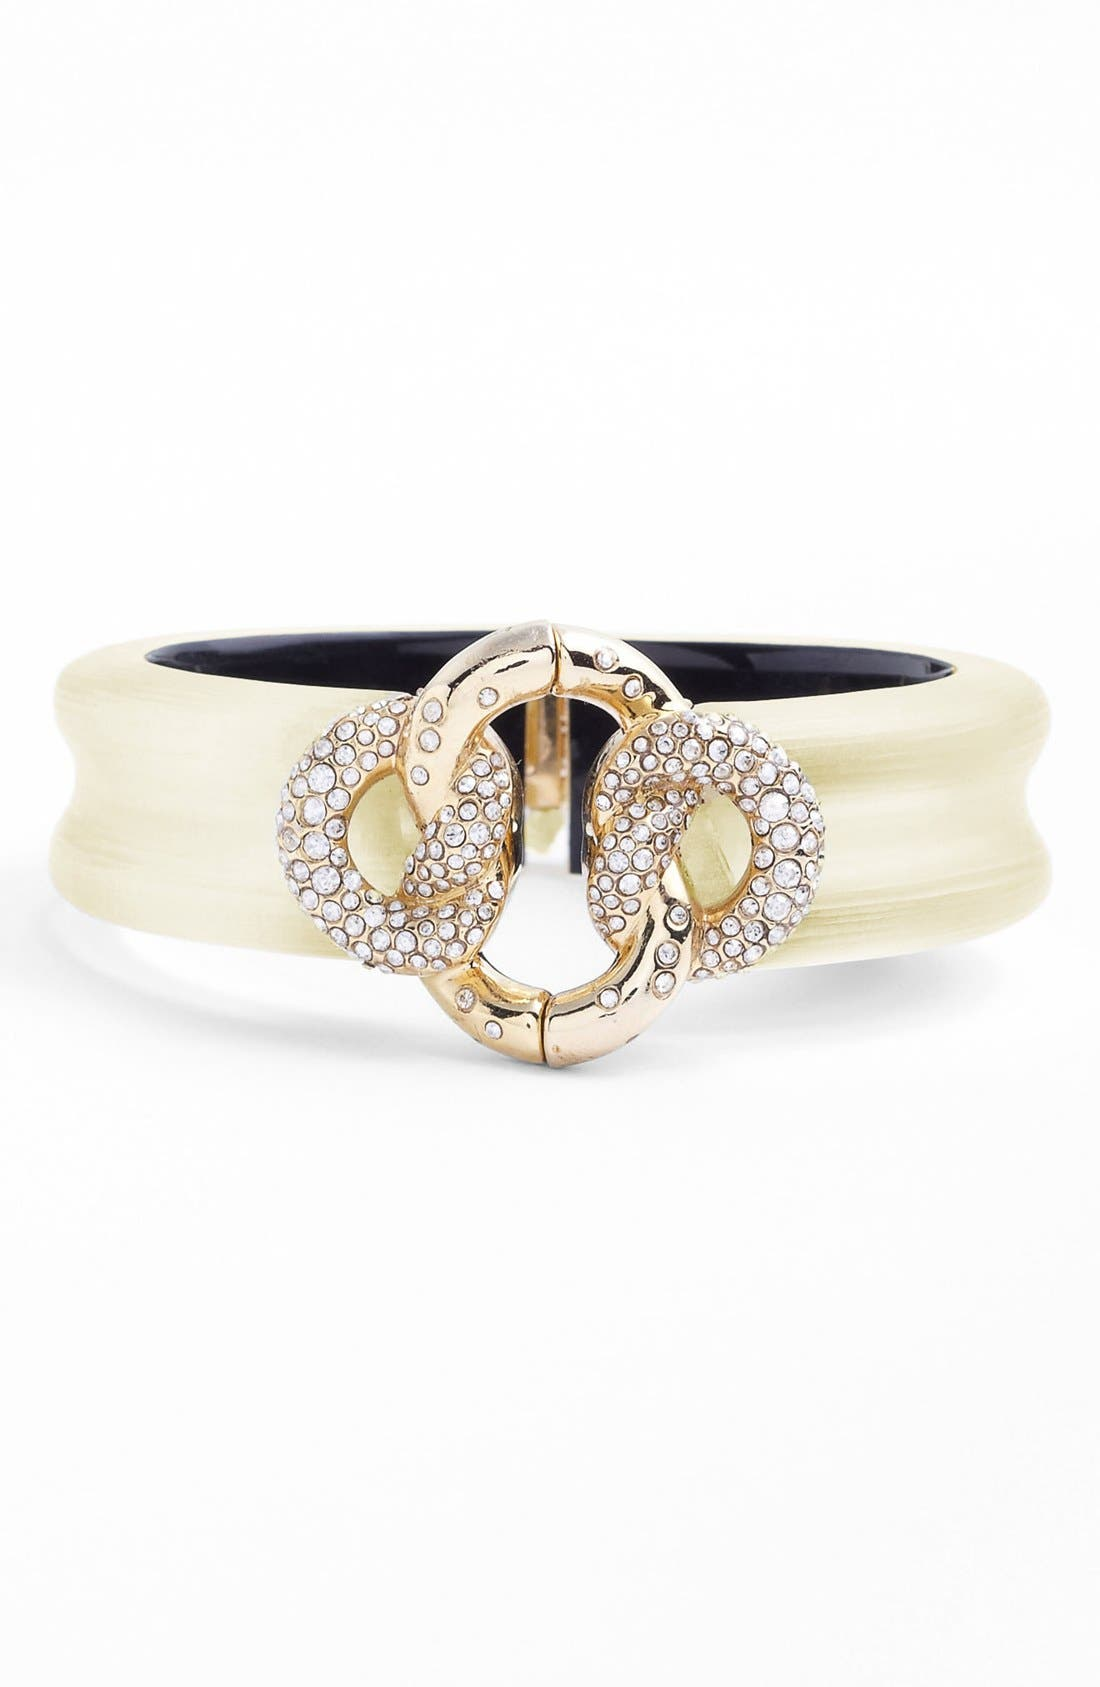 Alternate Image 1 Selected - Alexis Bittar 'Lucite® - Mod' Knot Bracelet